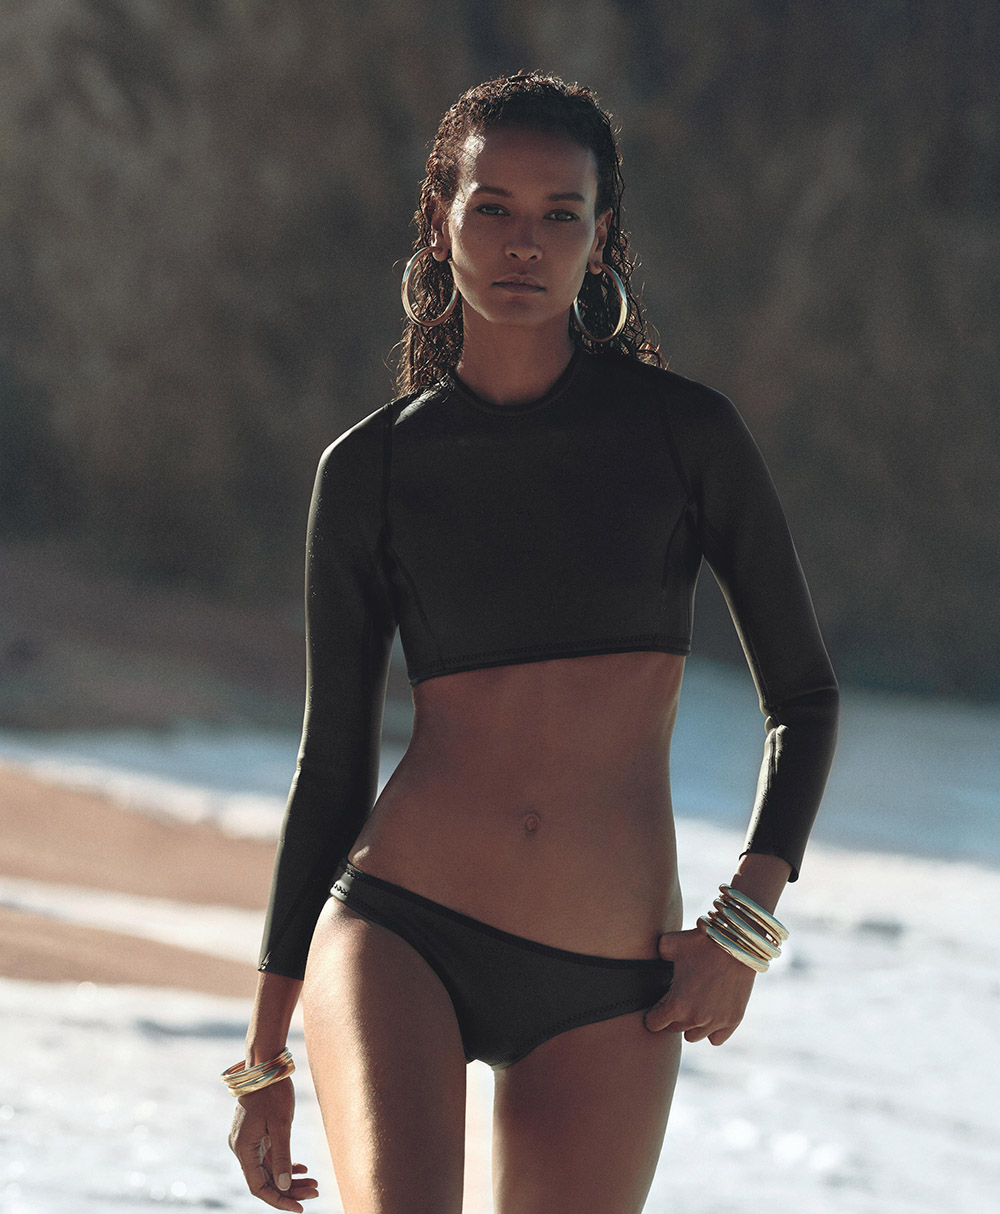 LIYA KEBEDE NOW_THEN ECO SWIMWEAR SUSTAINABLE PORTER MAGAZINE ECO NEOPRENE BIKINI